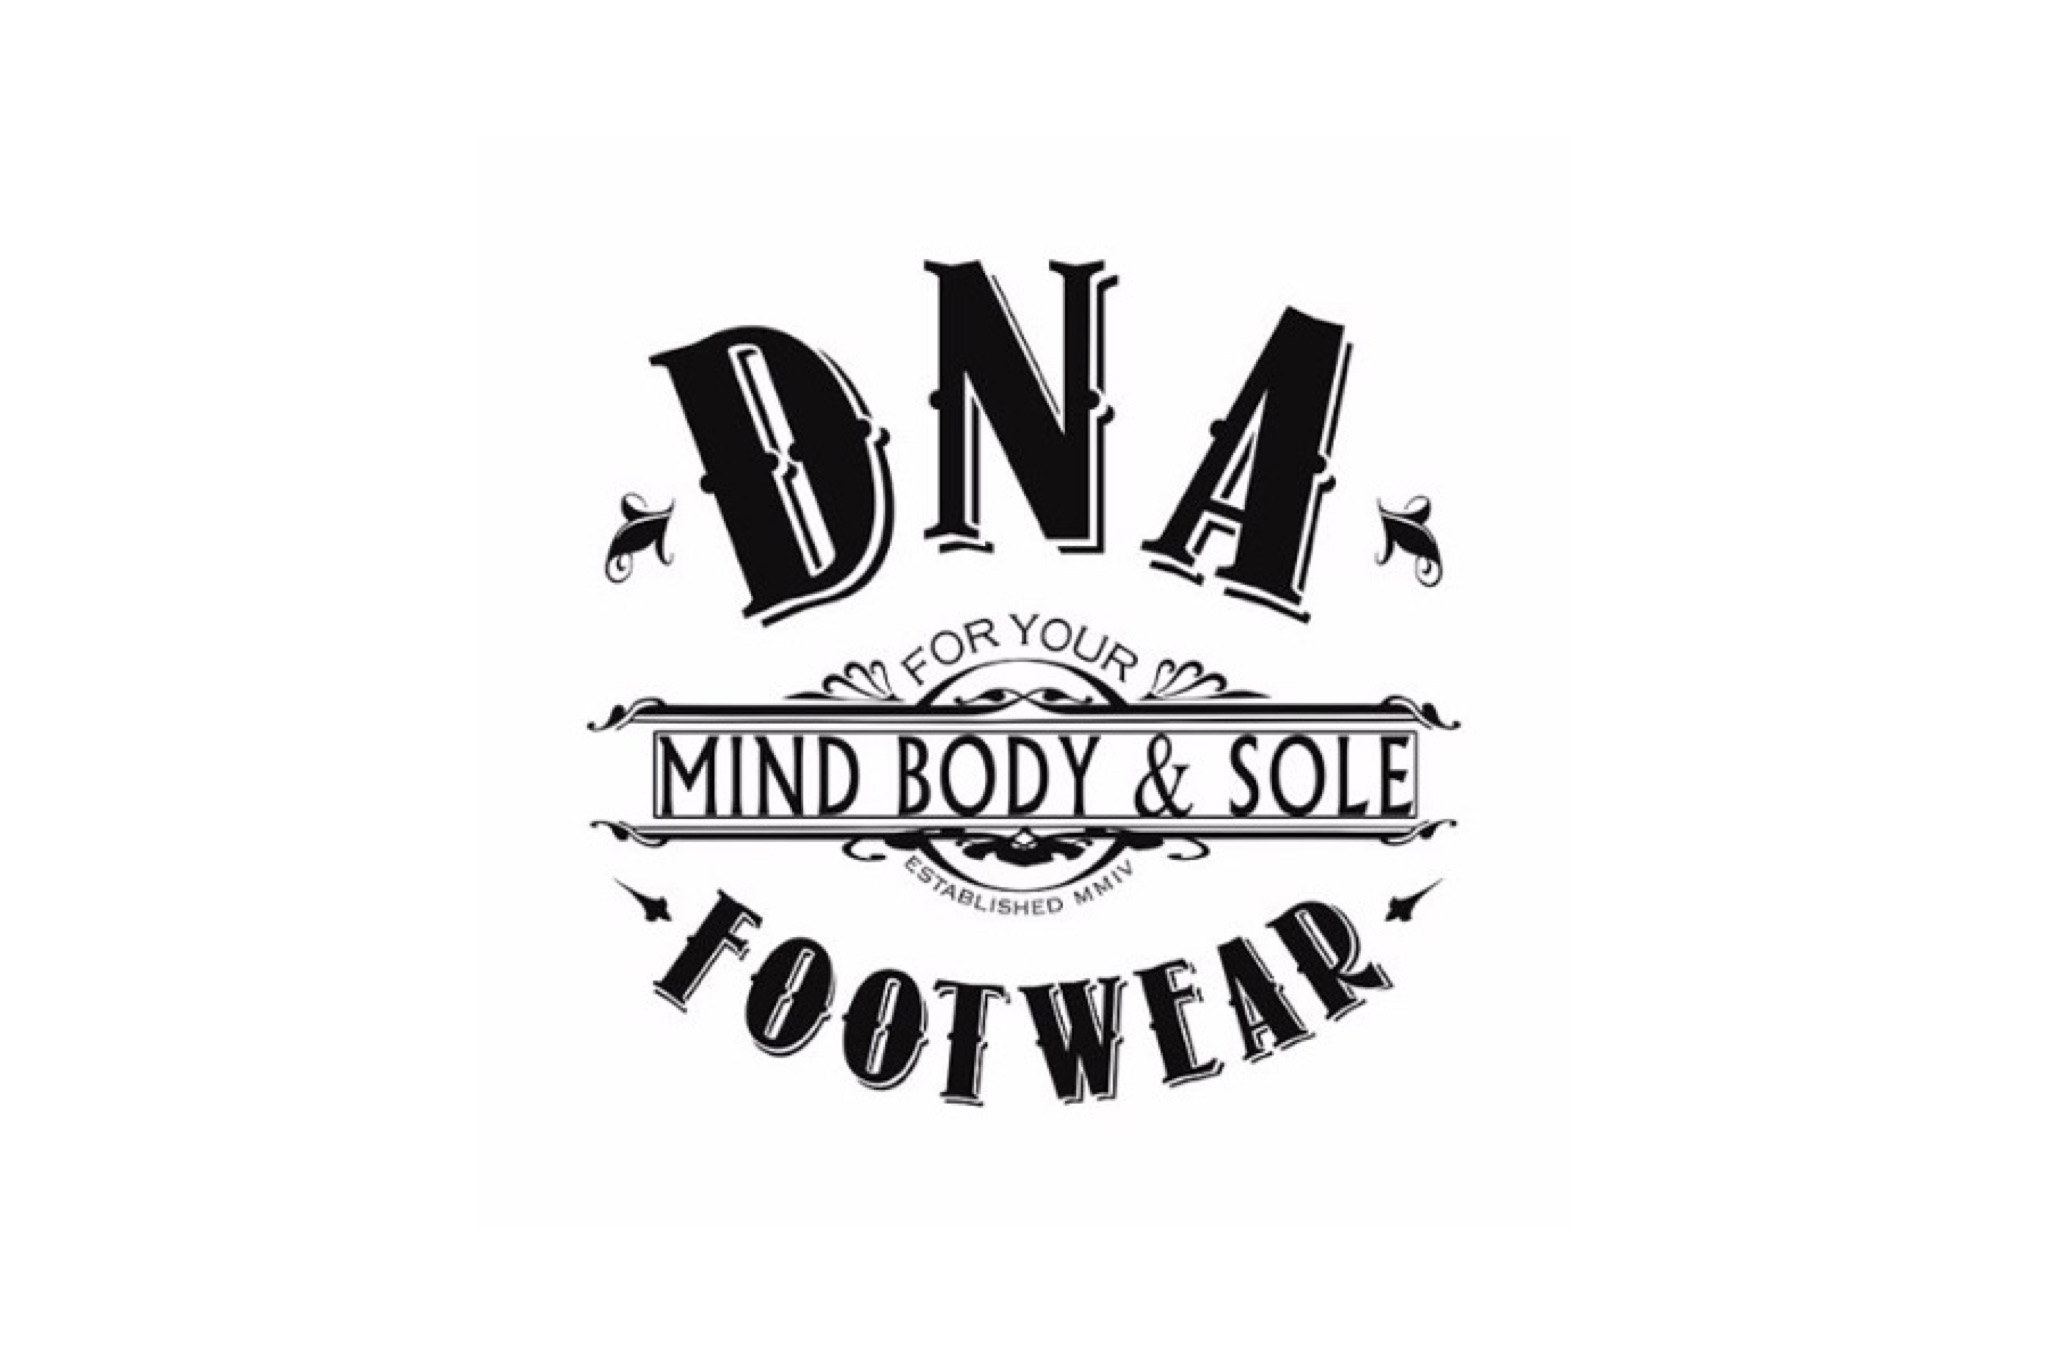 DNA Footwear - Retail shop specializing in footwear - rustic chic boutique shopping experience. Energizing folk house, deep house, modern, hip and soulful tunes. - dnafootwear.com